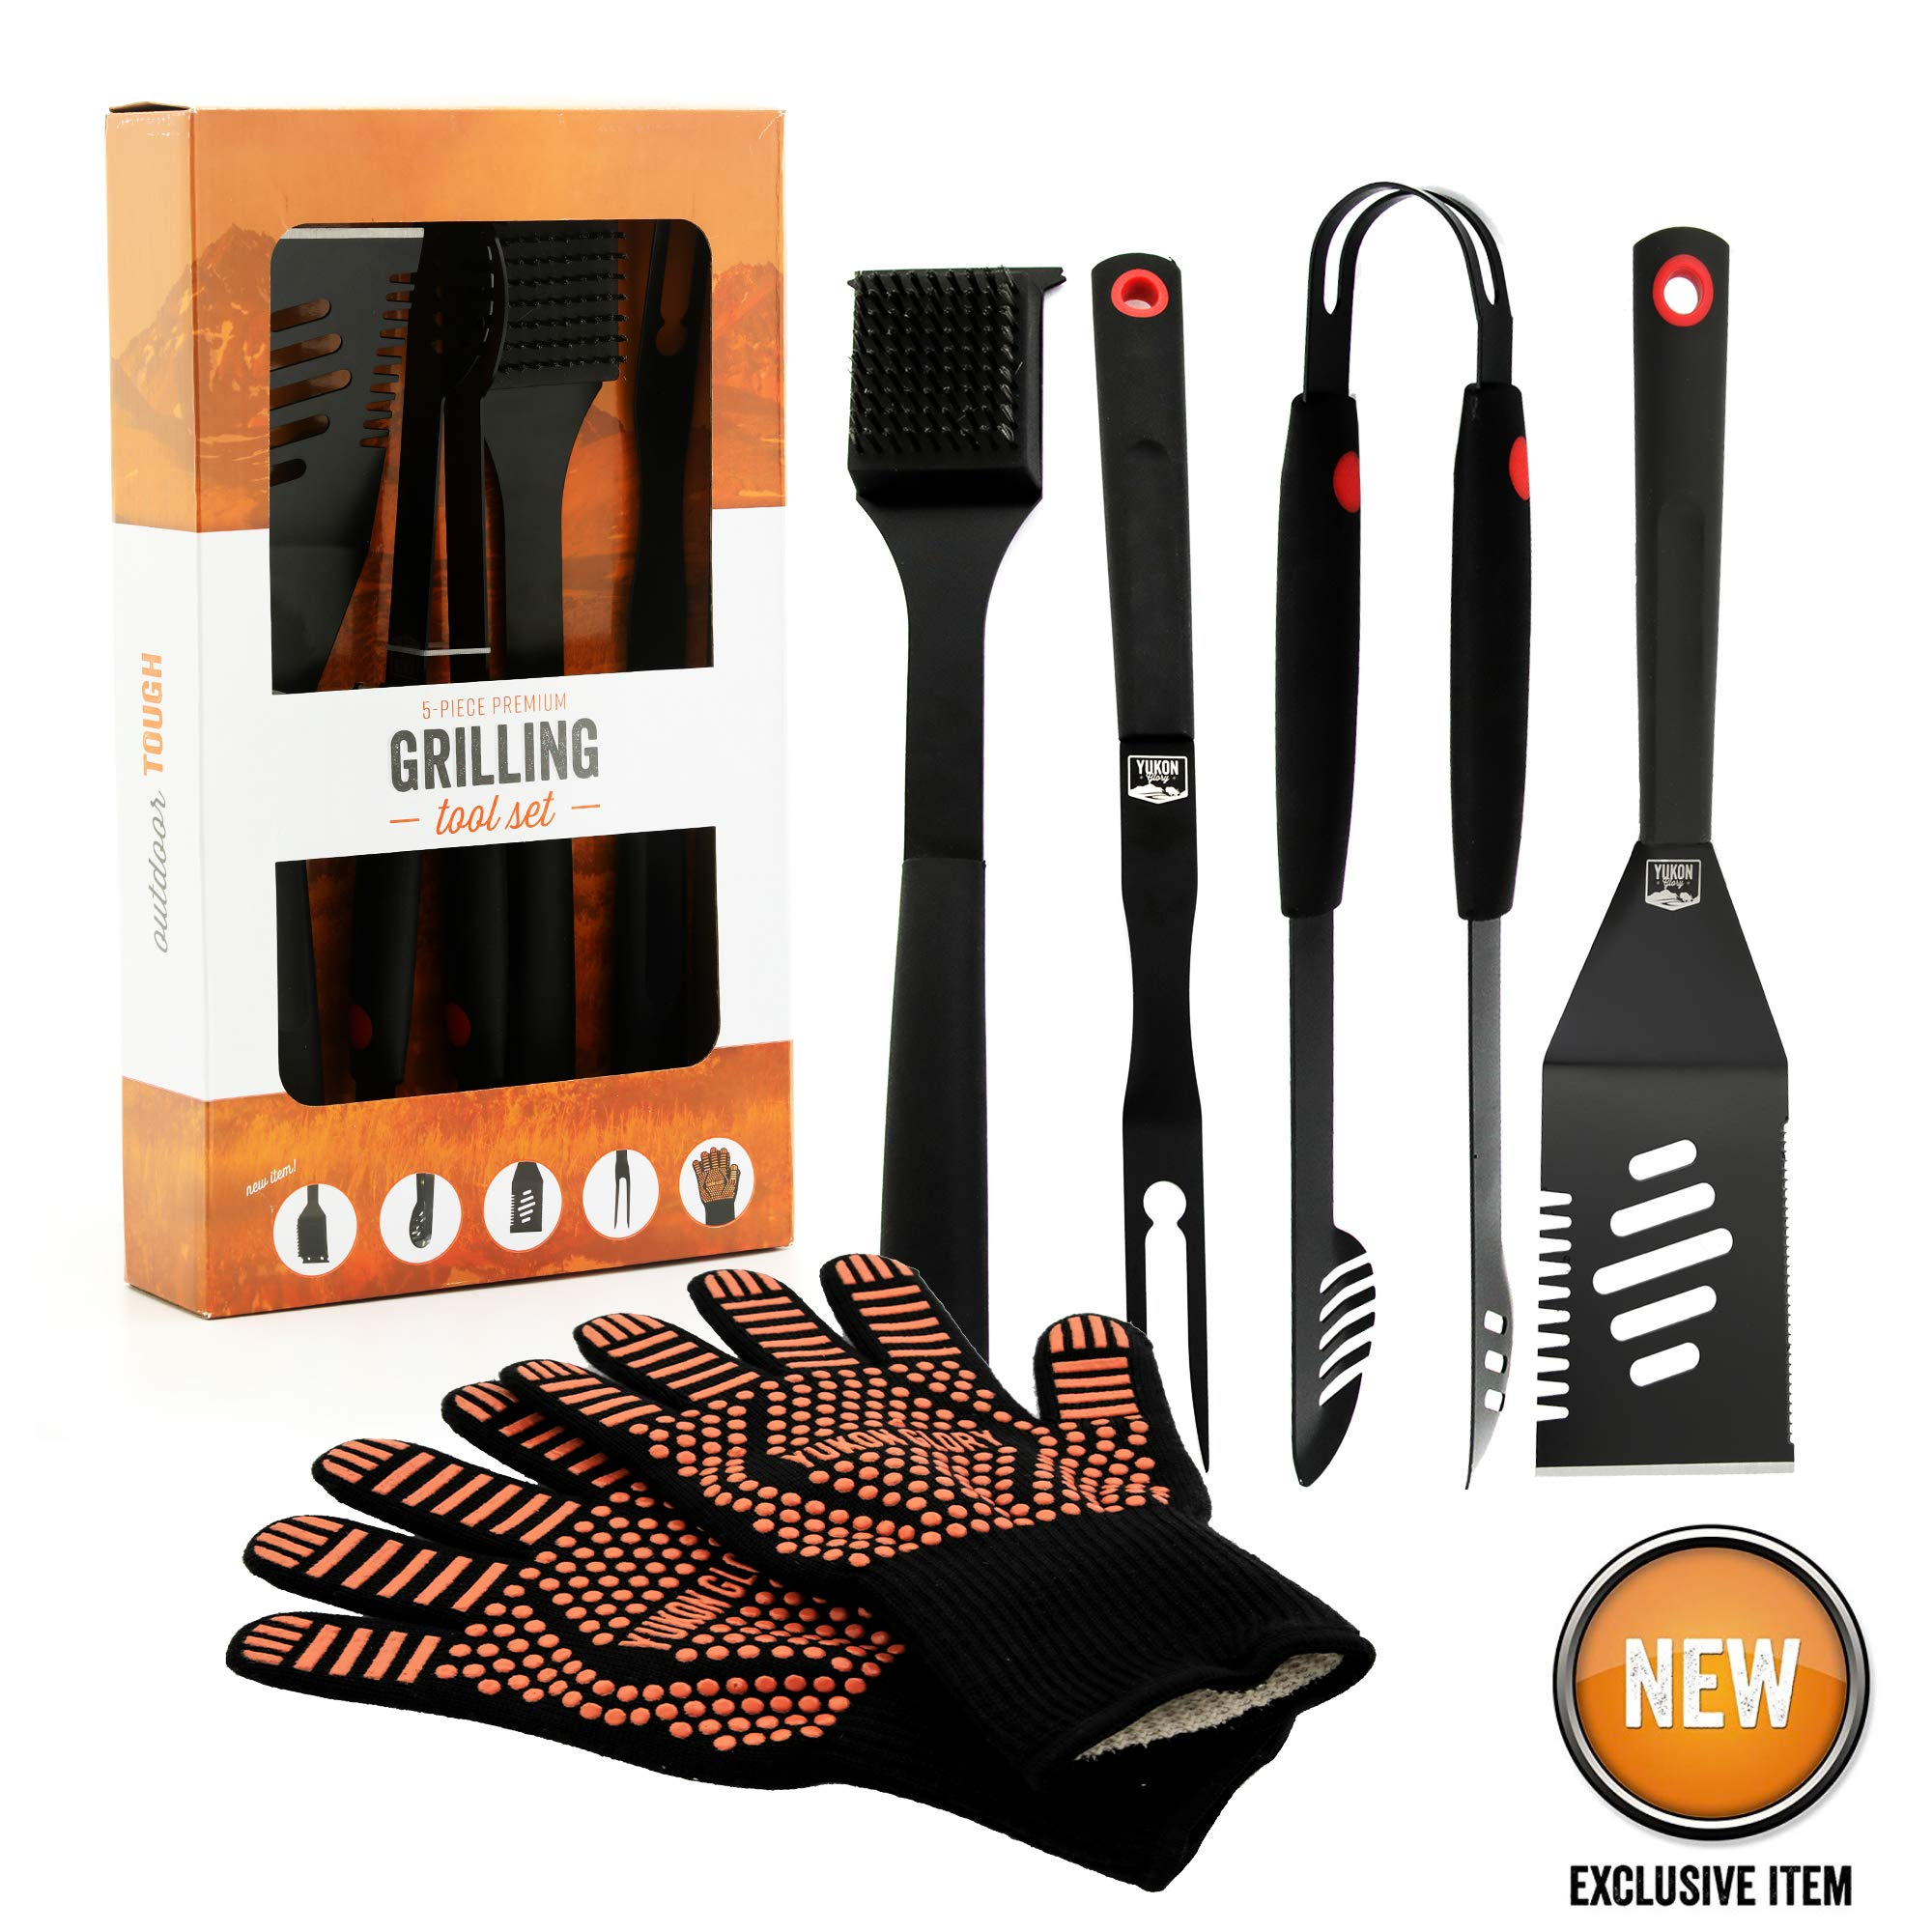 Yukon Glory Heavy Duty 5 Piece Grilling Tools Set, Durable Stainless Steel BBQ Accessories, Long Handle 3 in 1 Spatula, Tongs, Brush, Grill Fork, Thick Grilling Gloves, Gift Set by Yukon Glory